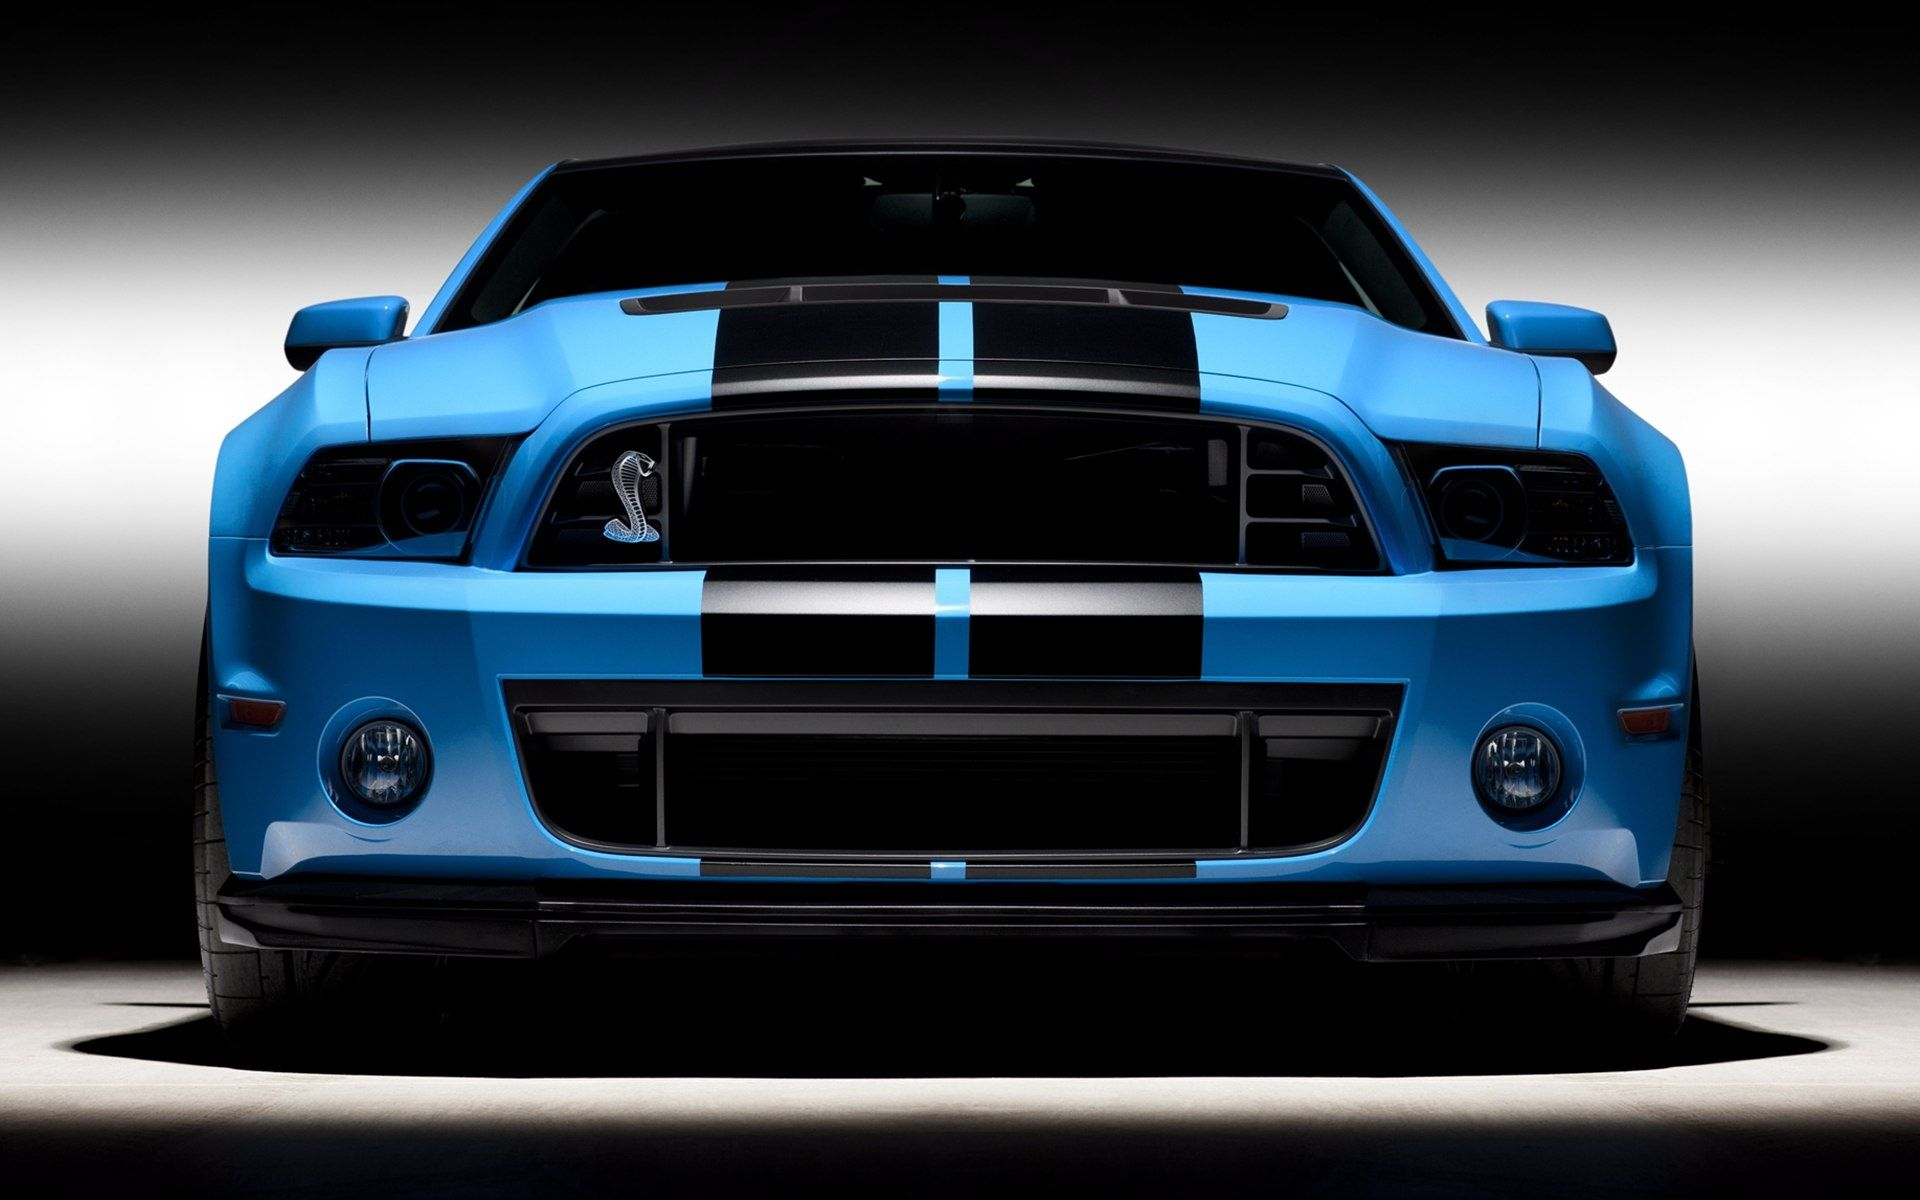 2013 Ford Shelby Gt500 Wallpapers Cas Wallpaper Hd Ford